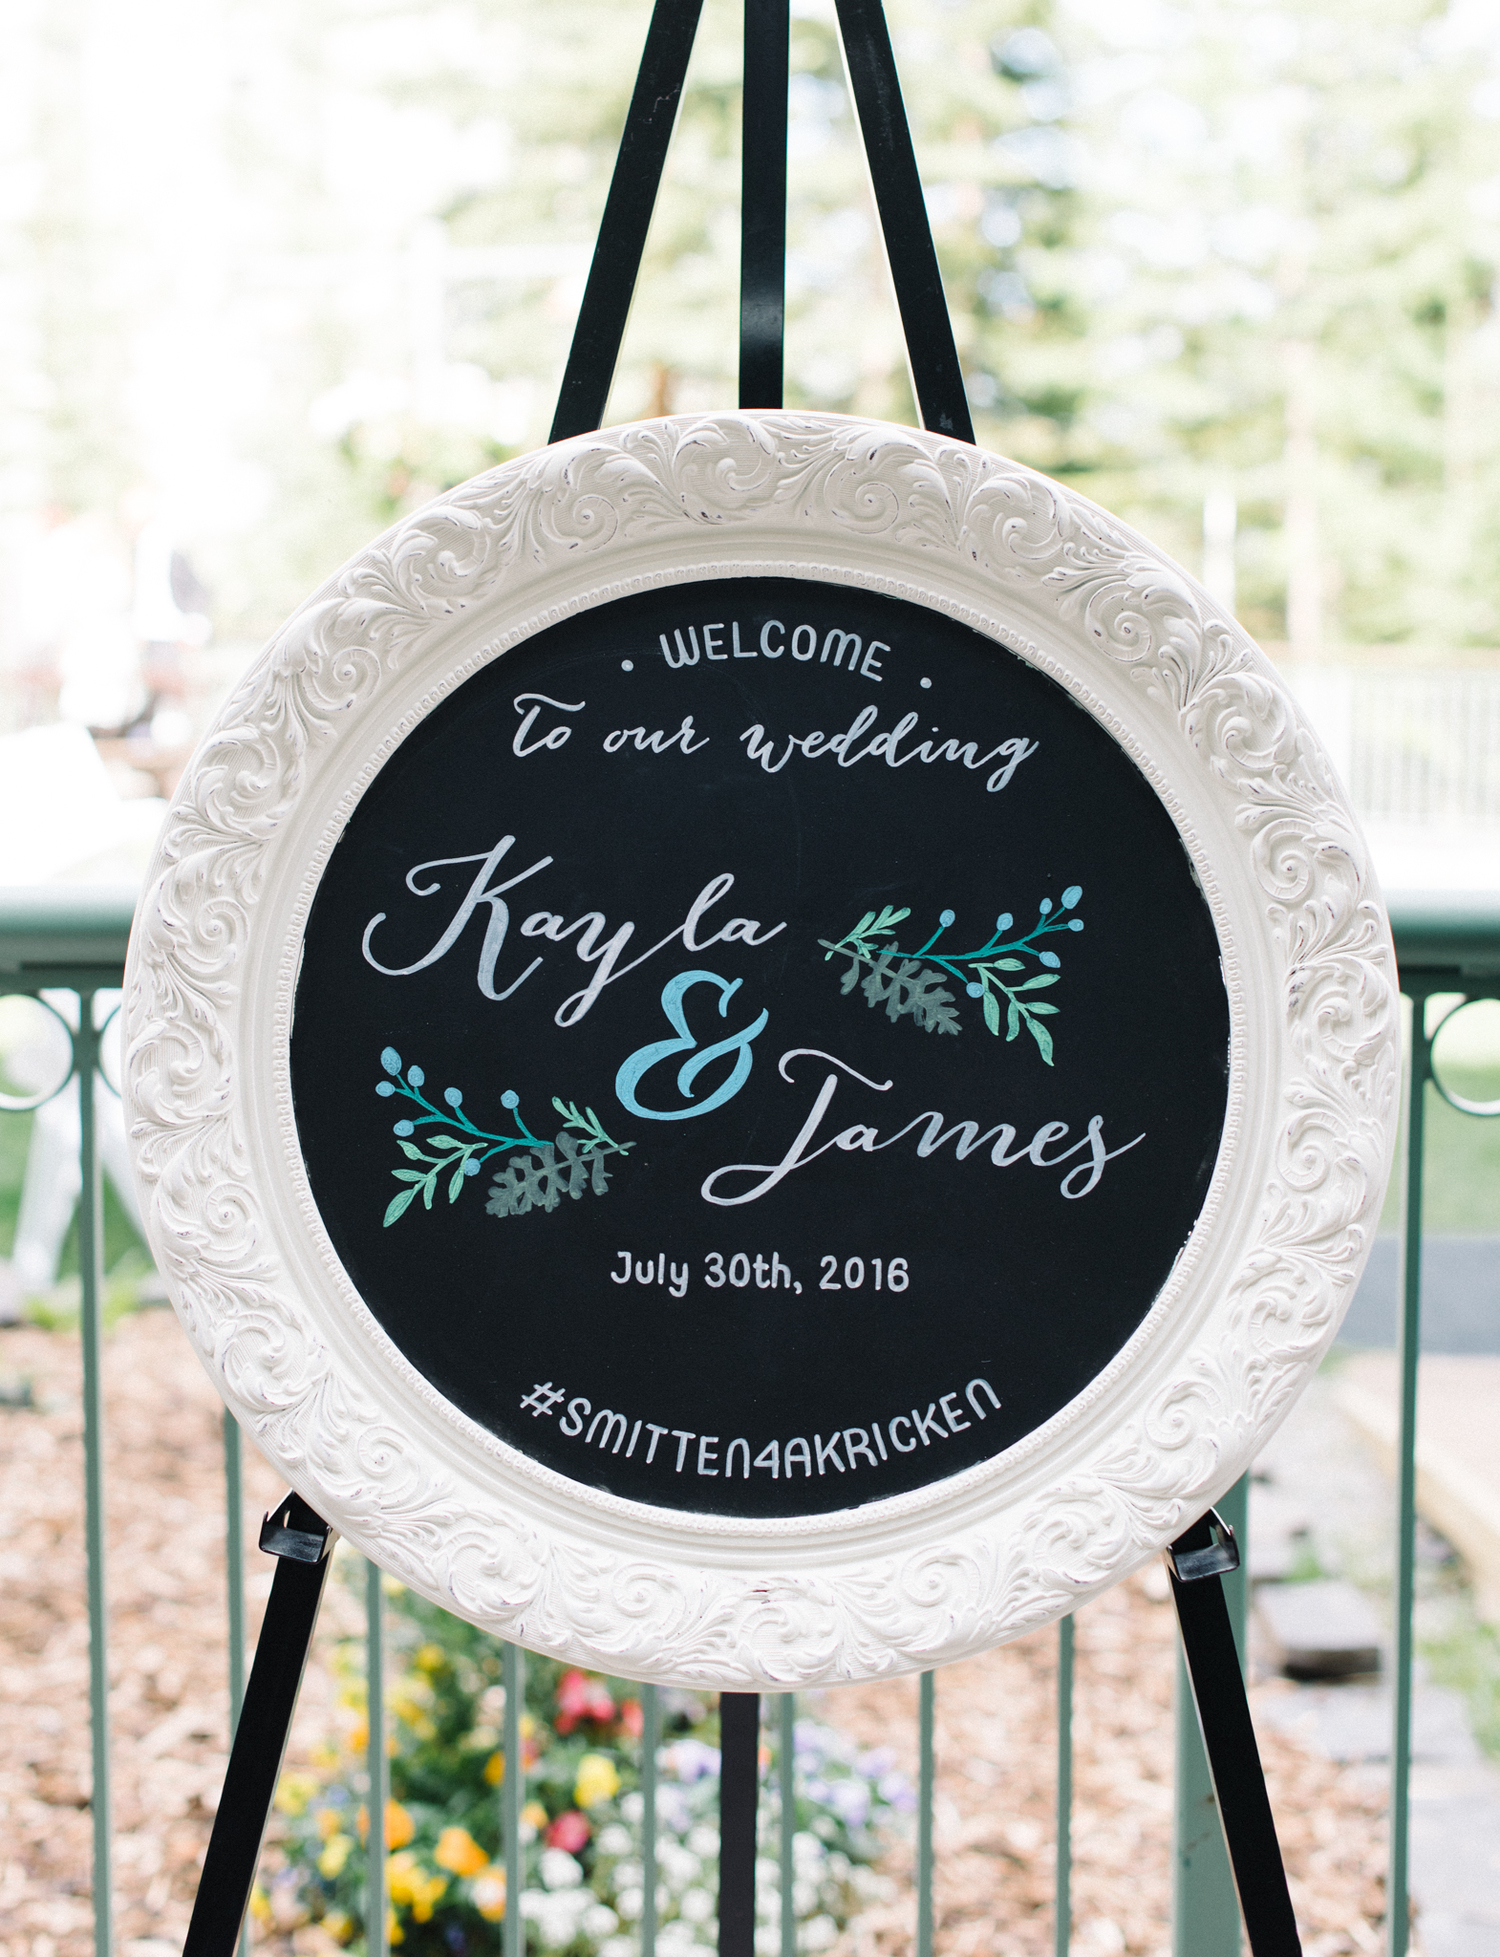 Here Kayla & James have included their names as well as hashtag on their wedding welcome sign.Photo courtesy of Sarah Vaughan